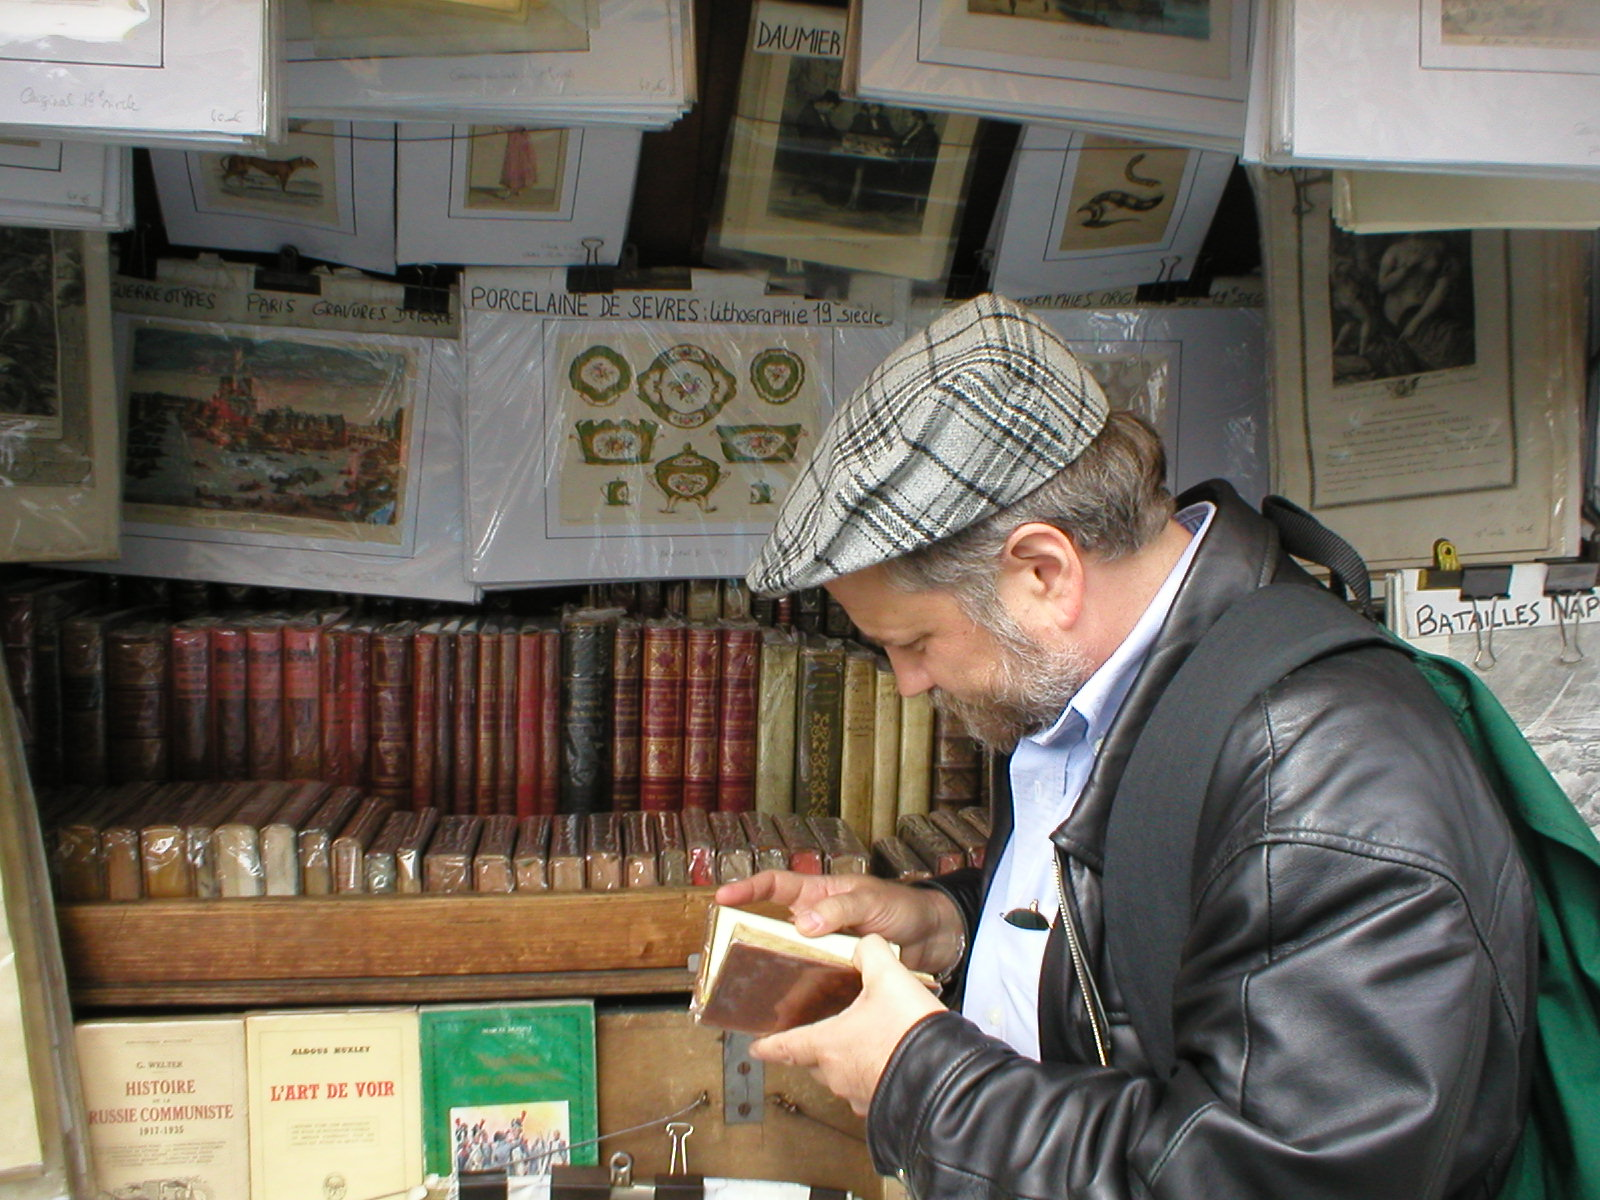 A blind flaneur peruses an edition of Voltaire printed in 1745.